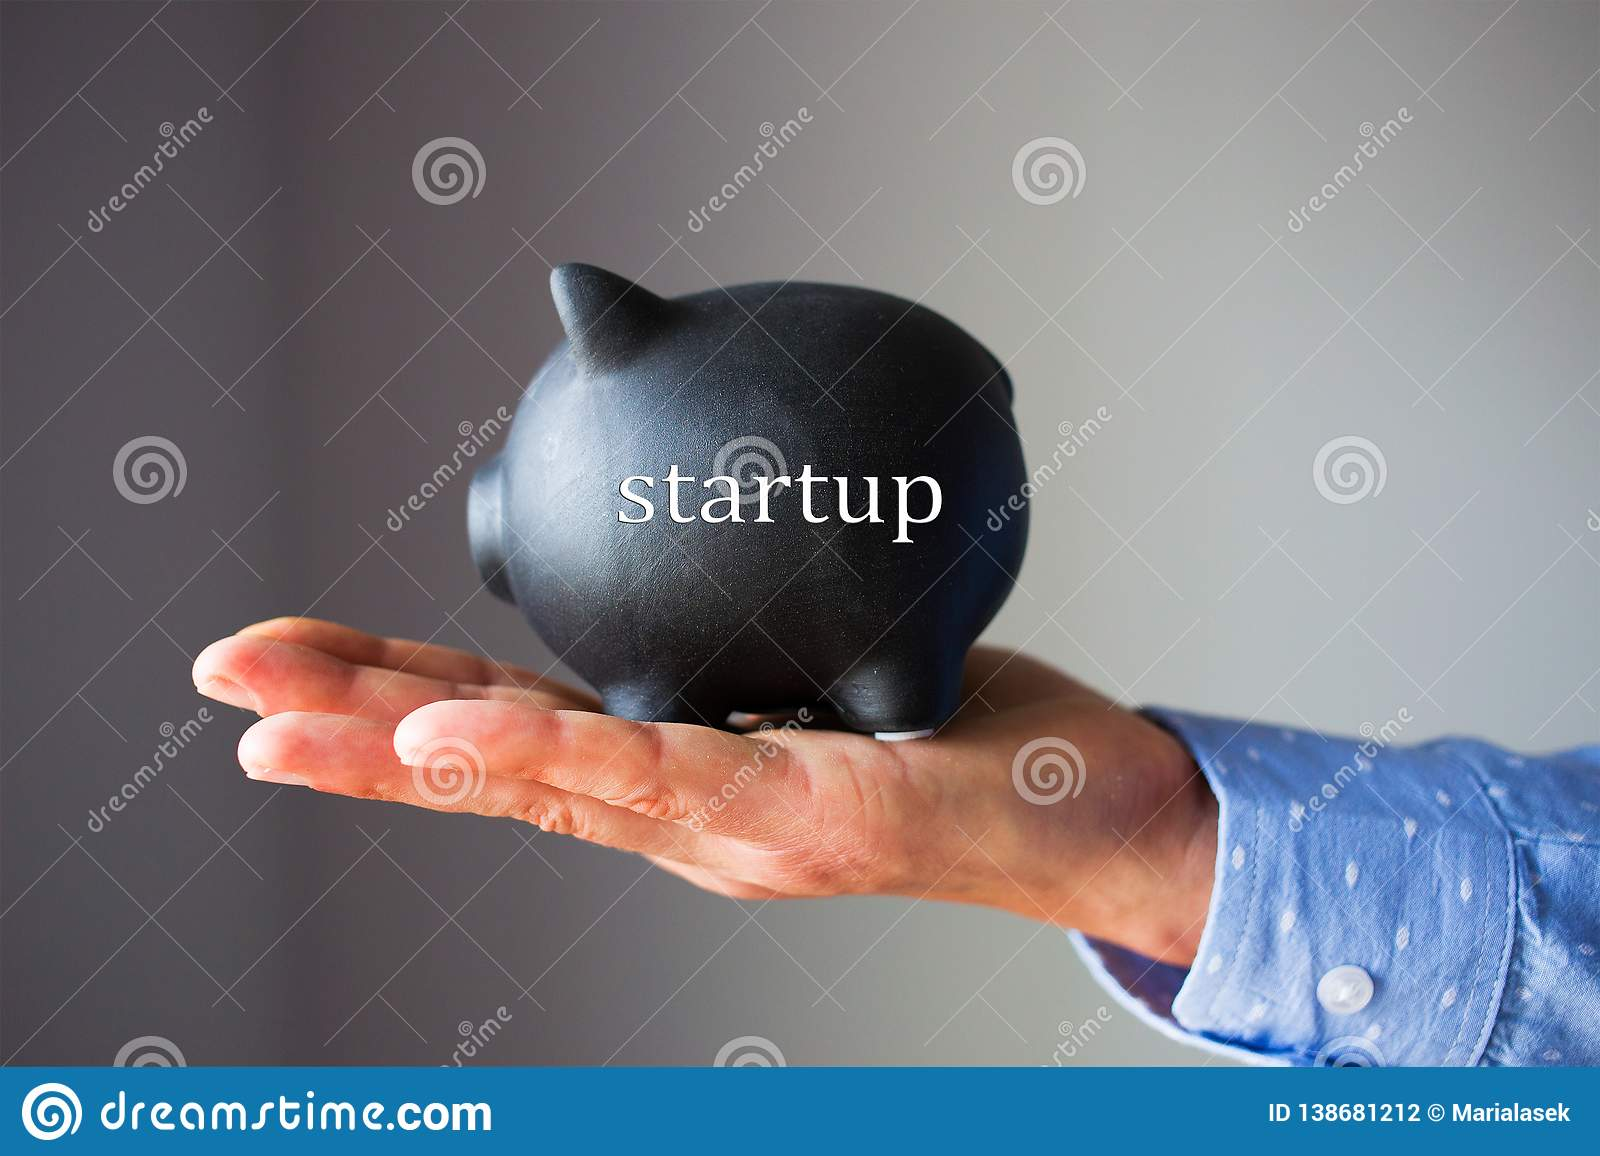 A hand is holding black piggy bank with word startup written on it